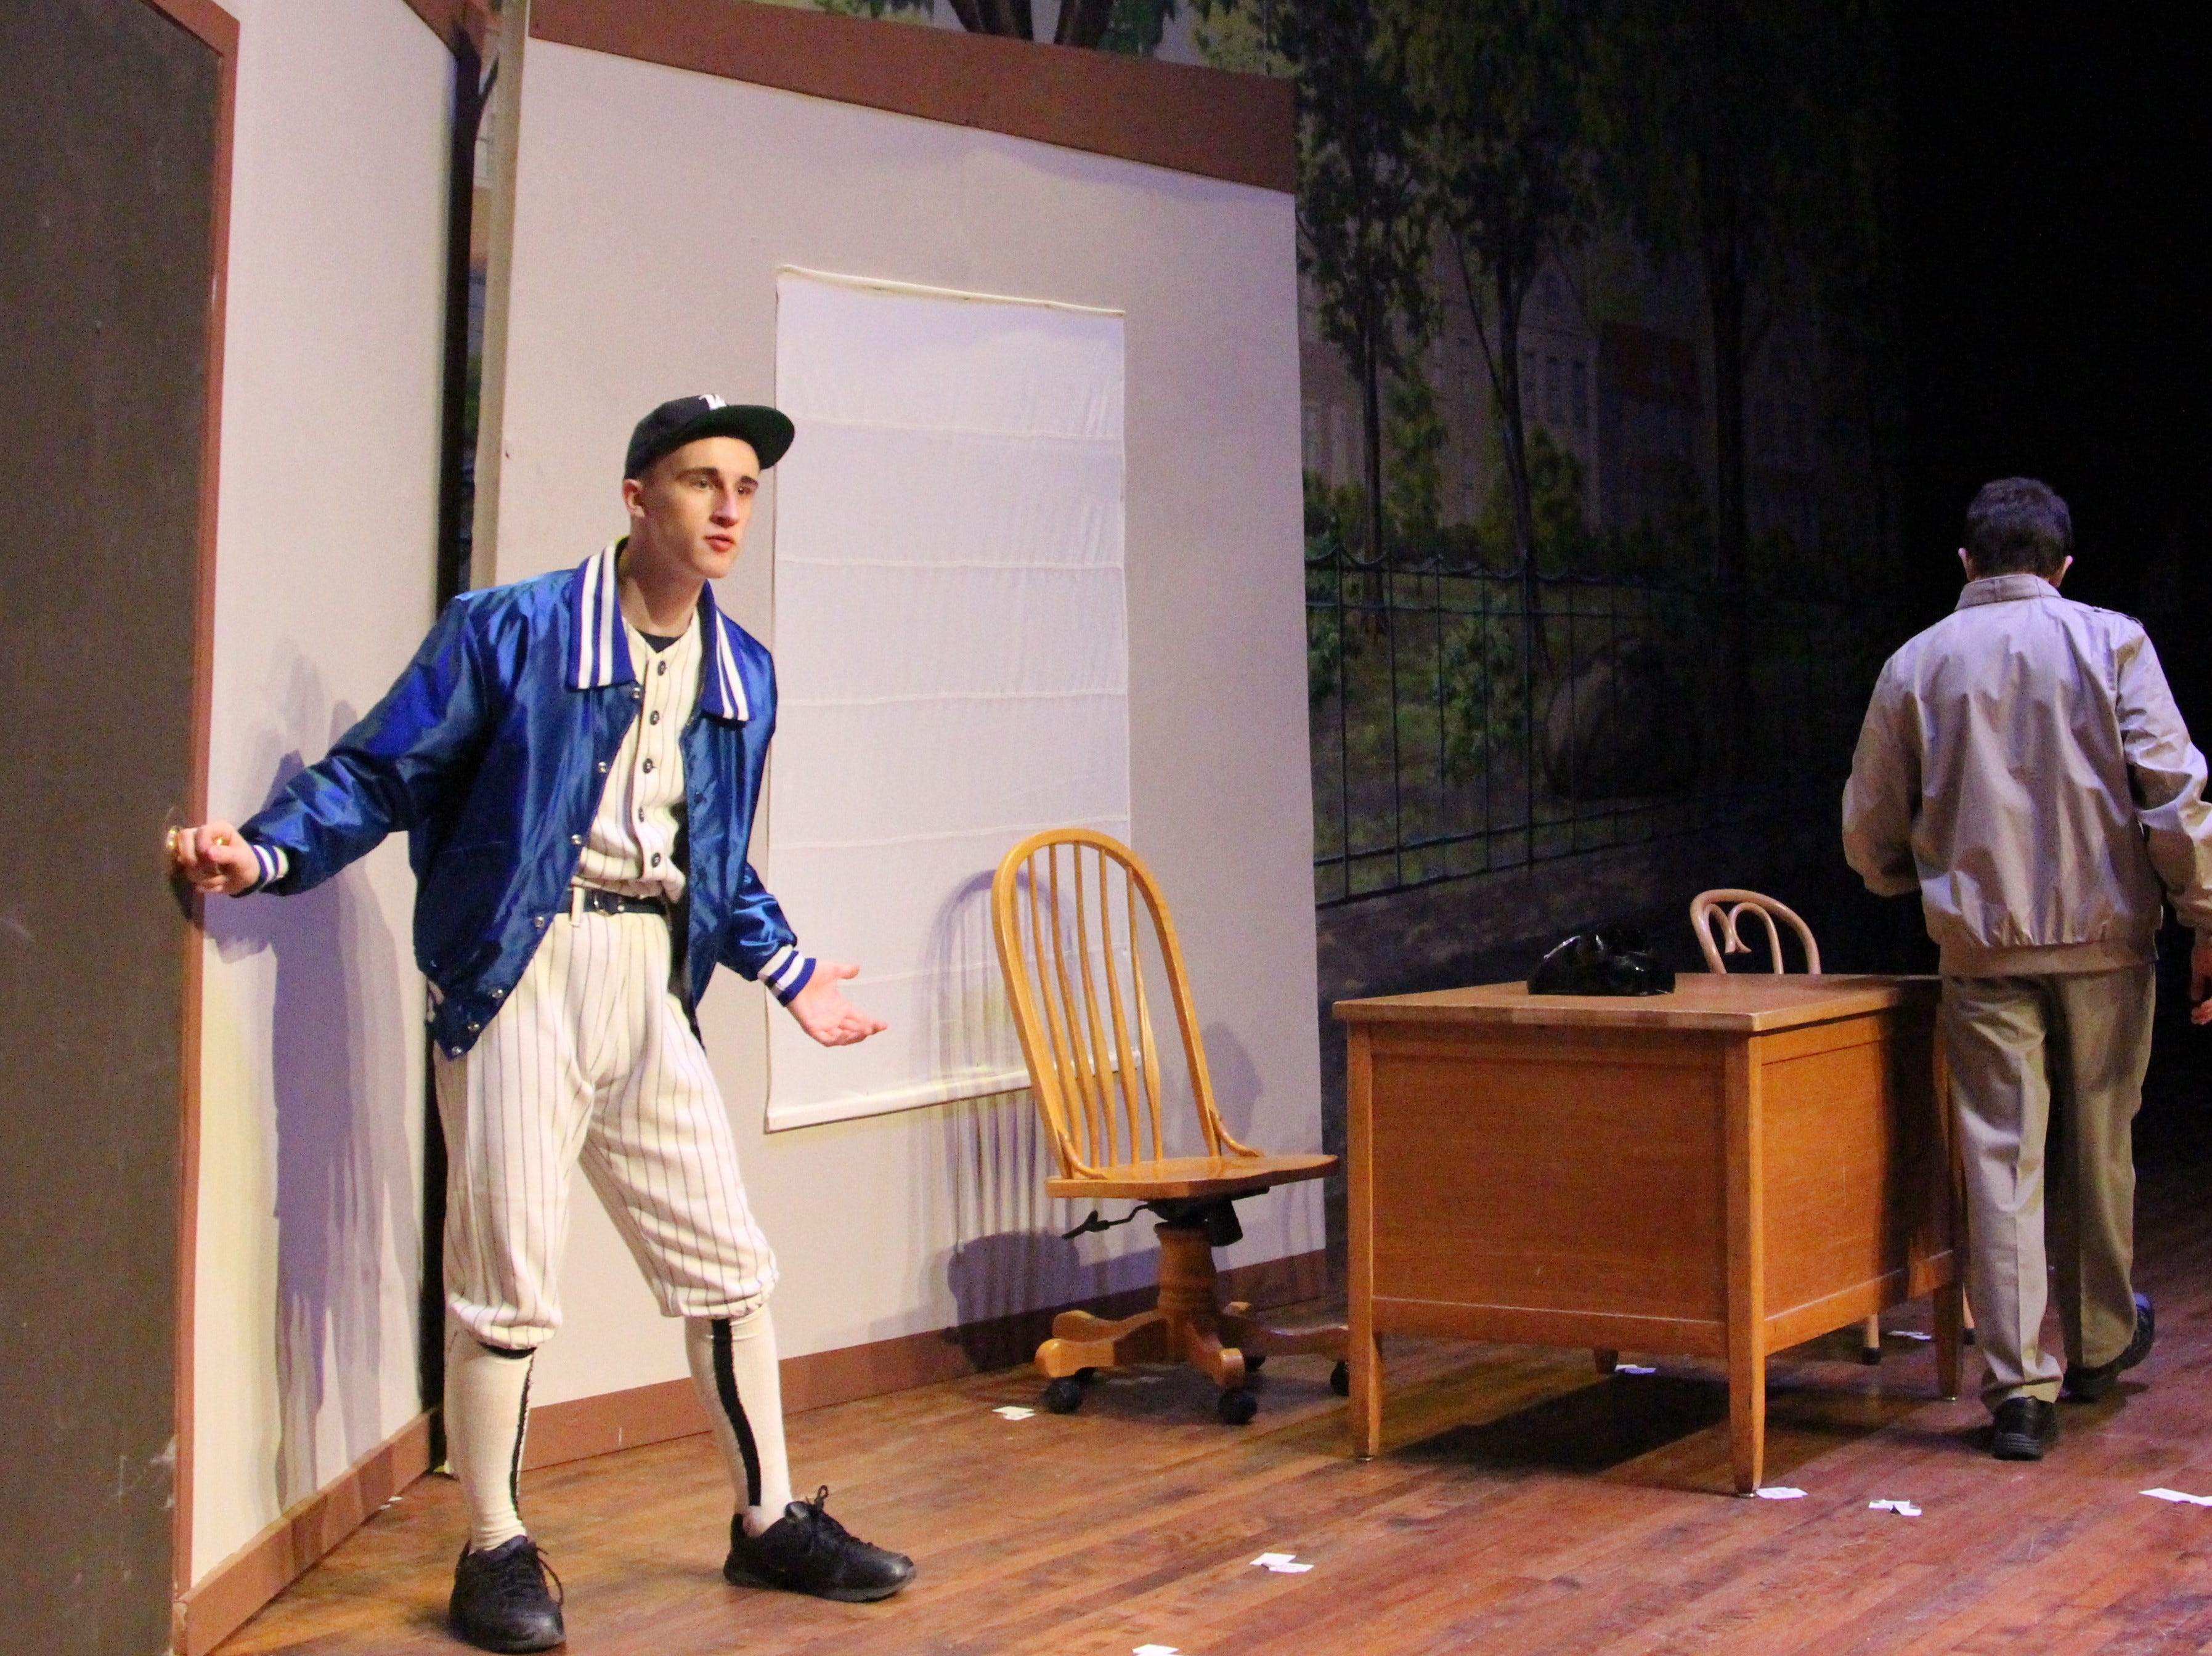 """Ryan Roth joins the scene during a Wednesday dress rehearsal of """"Damn Yankees"""" as hardworking  baseball manager Van Buren. The show is slated for this weekend at the Marion Palace Theatre."""